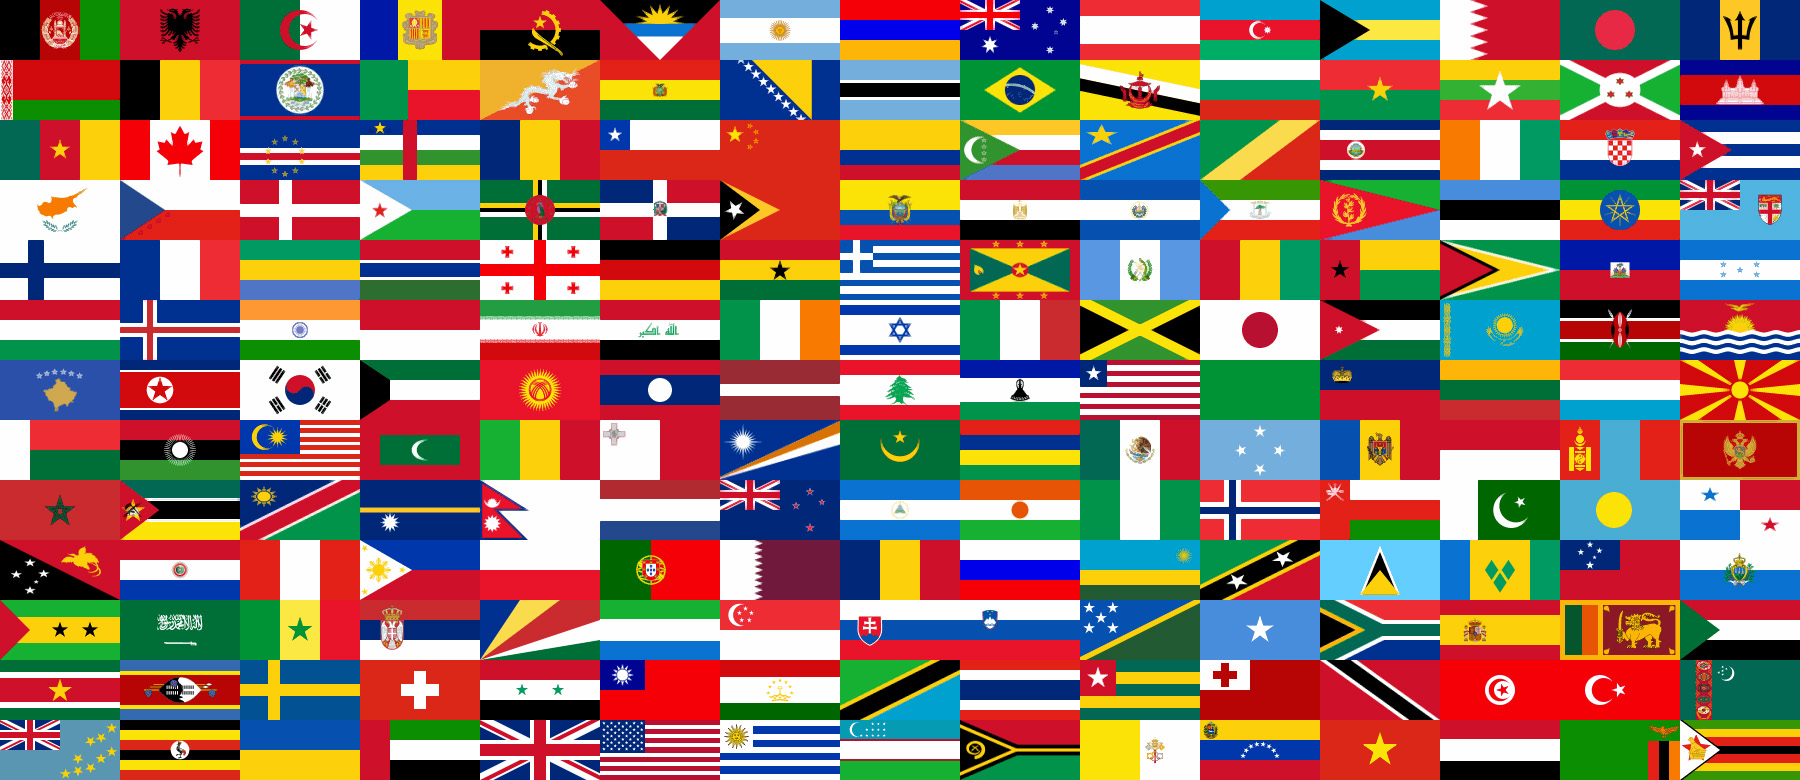 National Flags - We gave advanced warning to all the nation states on Earth through the United Nations. To ALL The HUMAN Powers That Be, we are dissolving your authority.